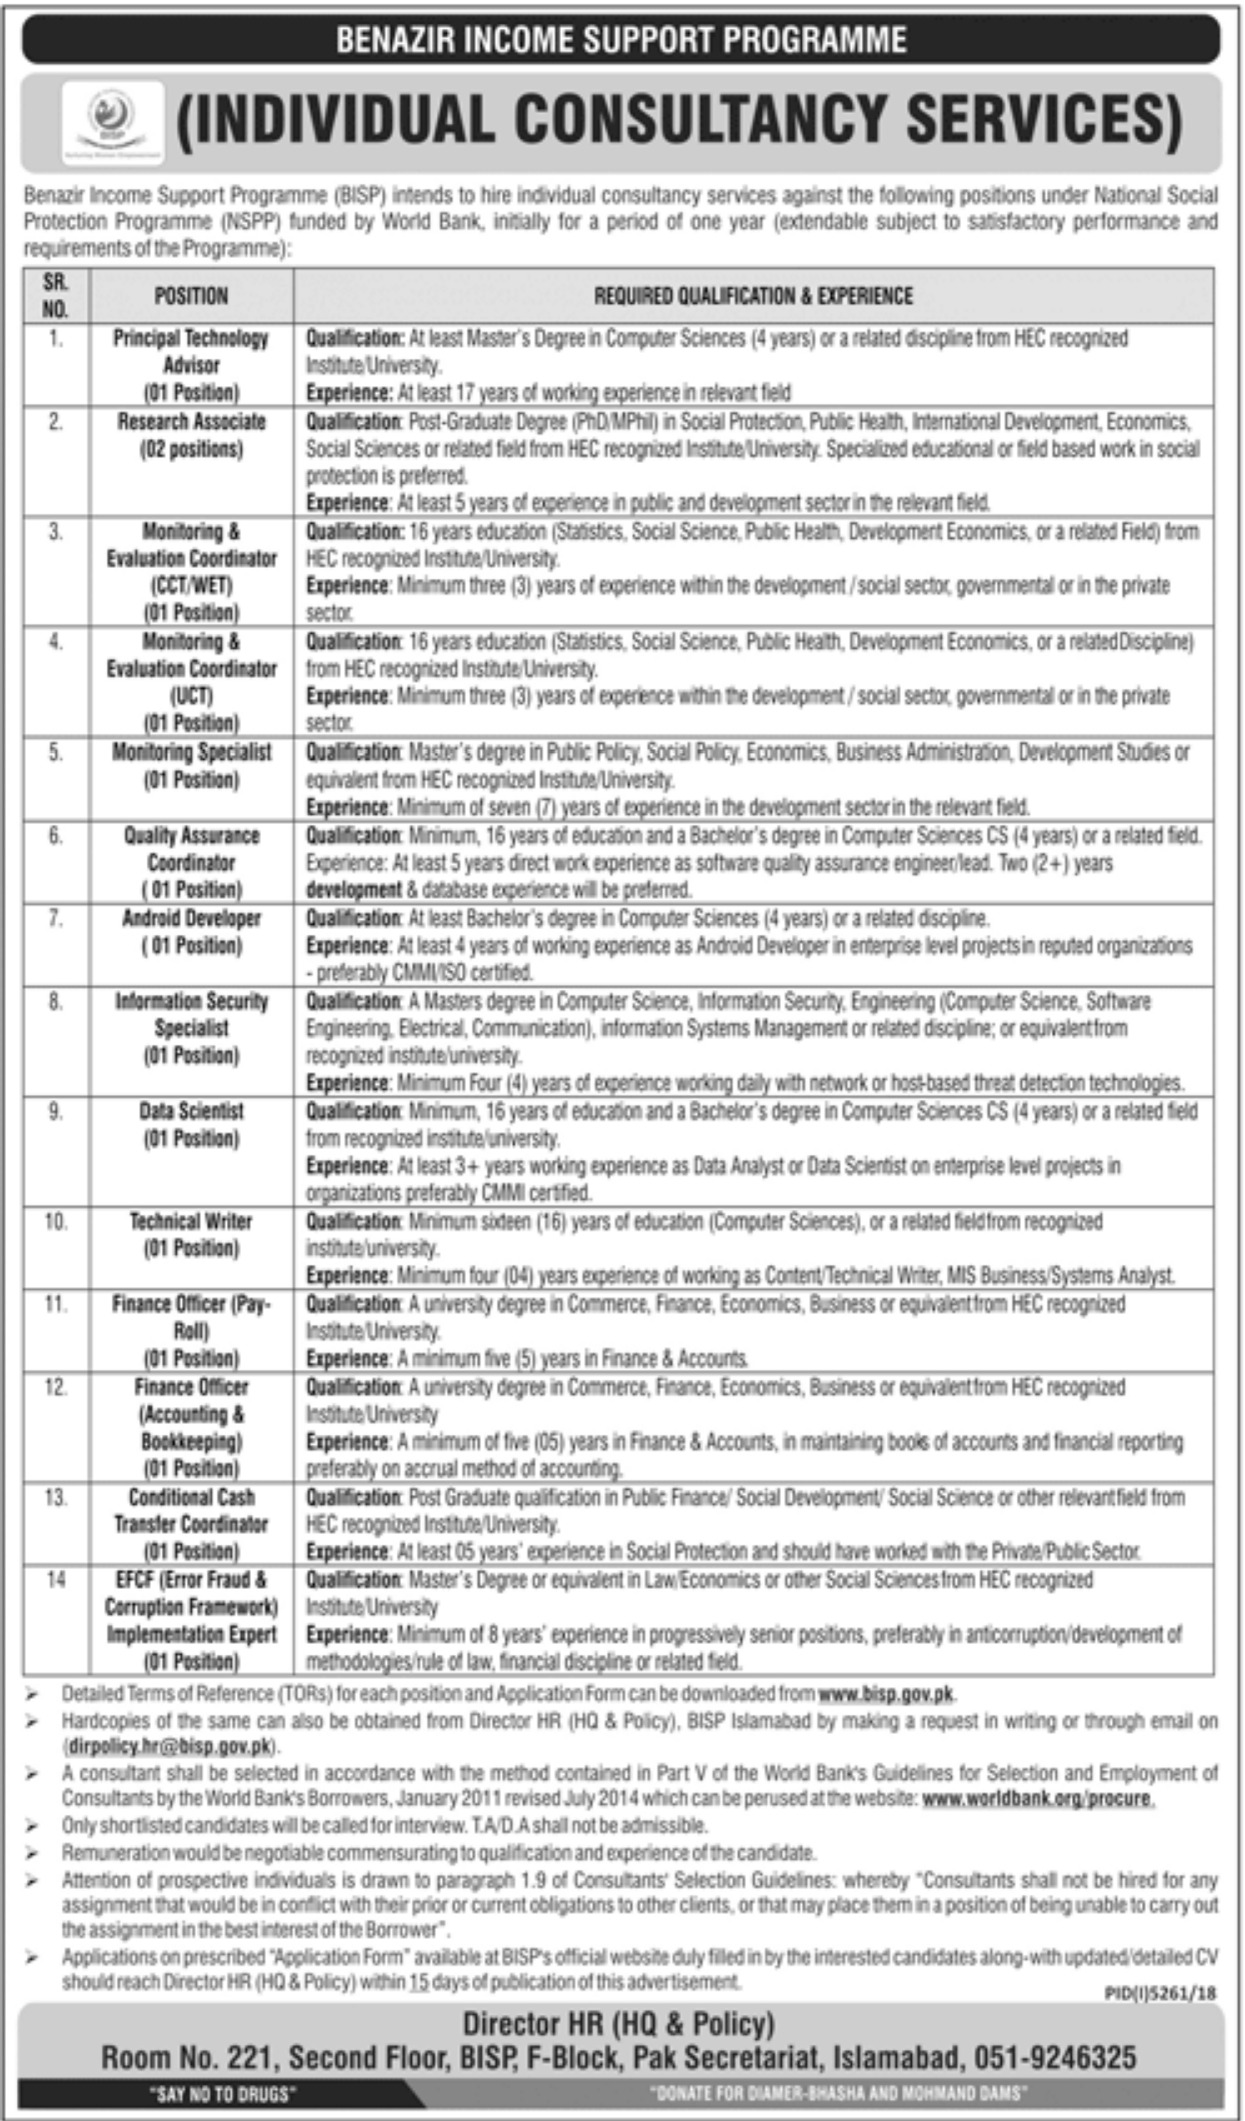 Benazir Income Support Programme BISP Jobs 2019 Individual Consultancy Services